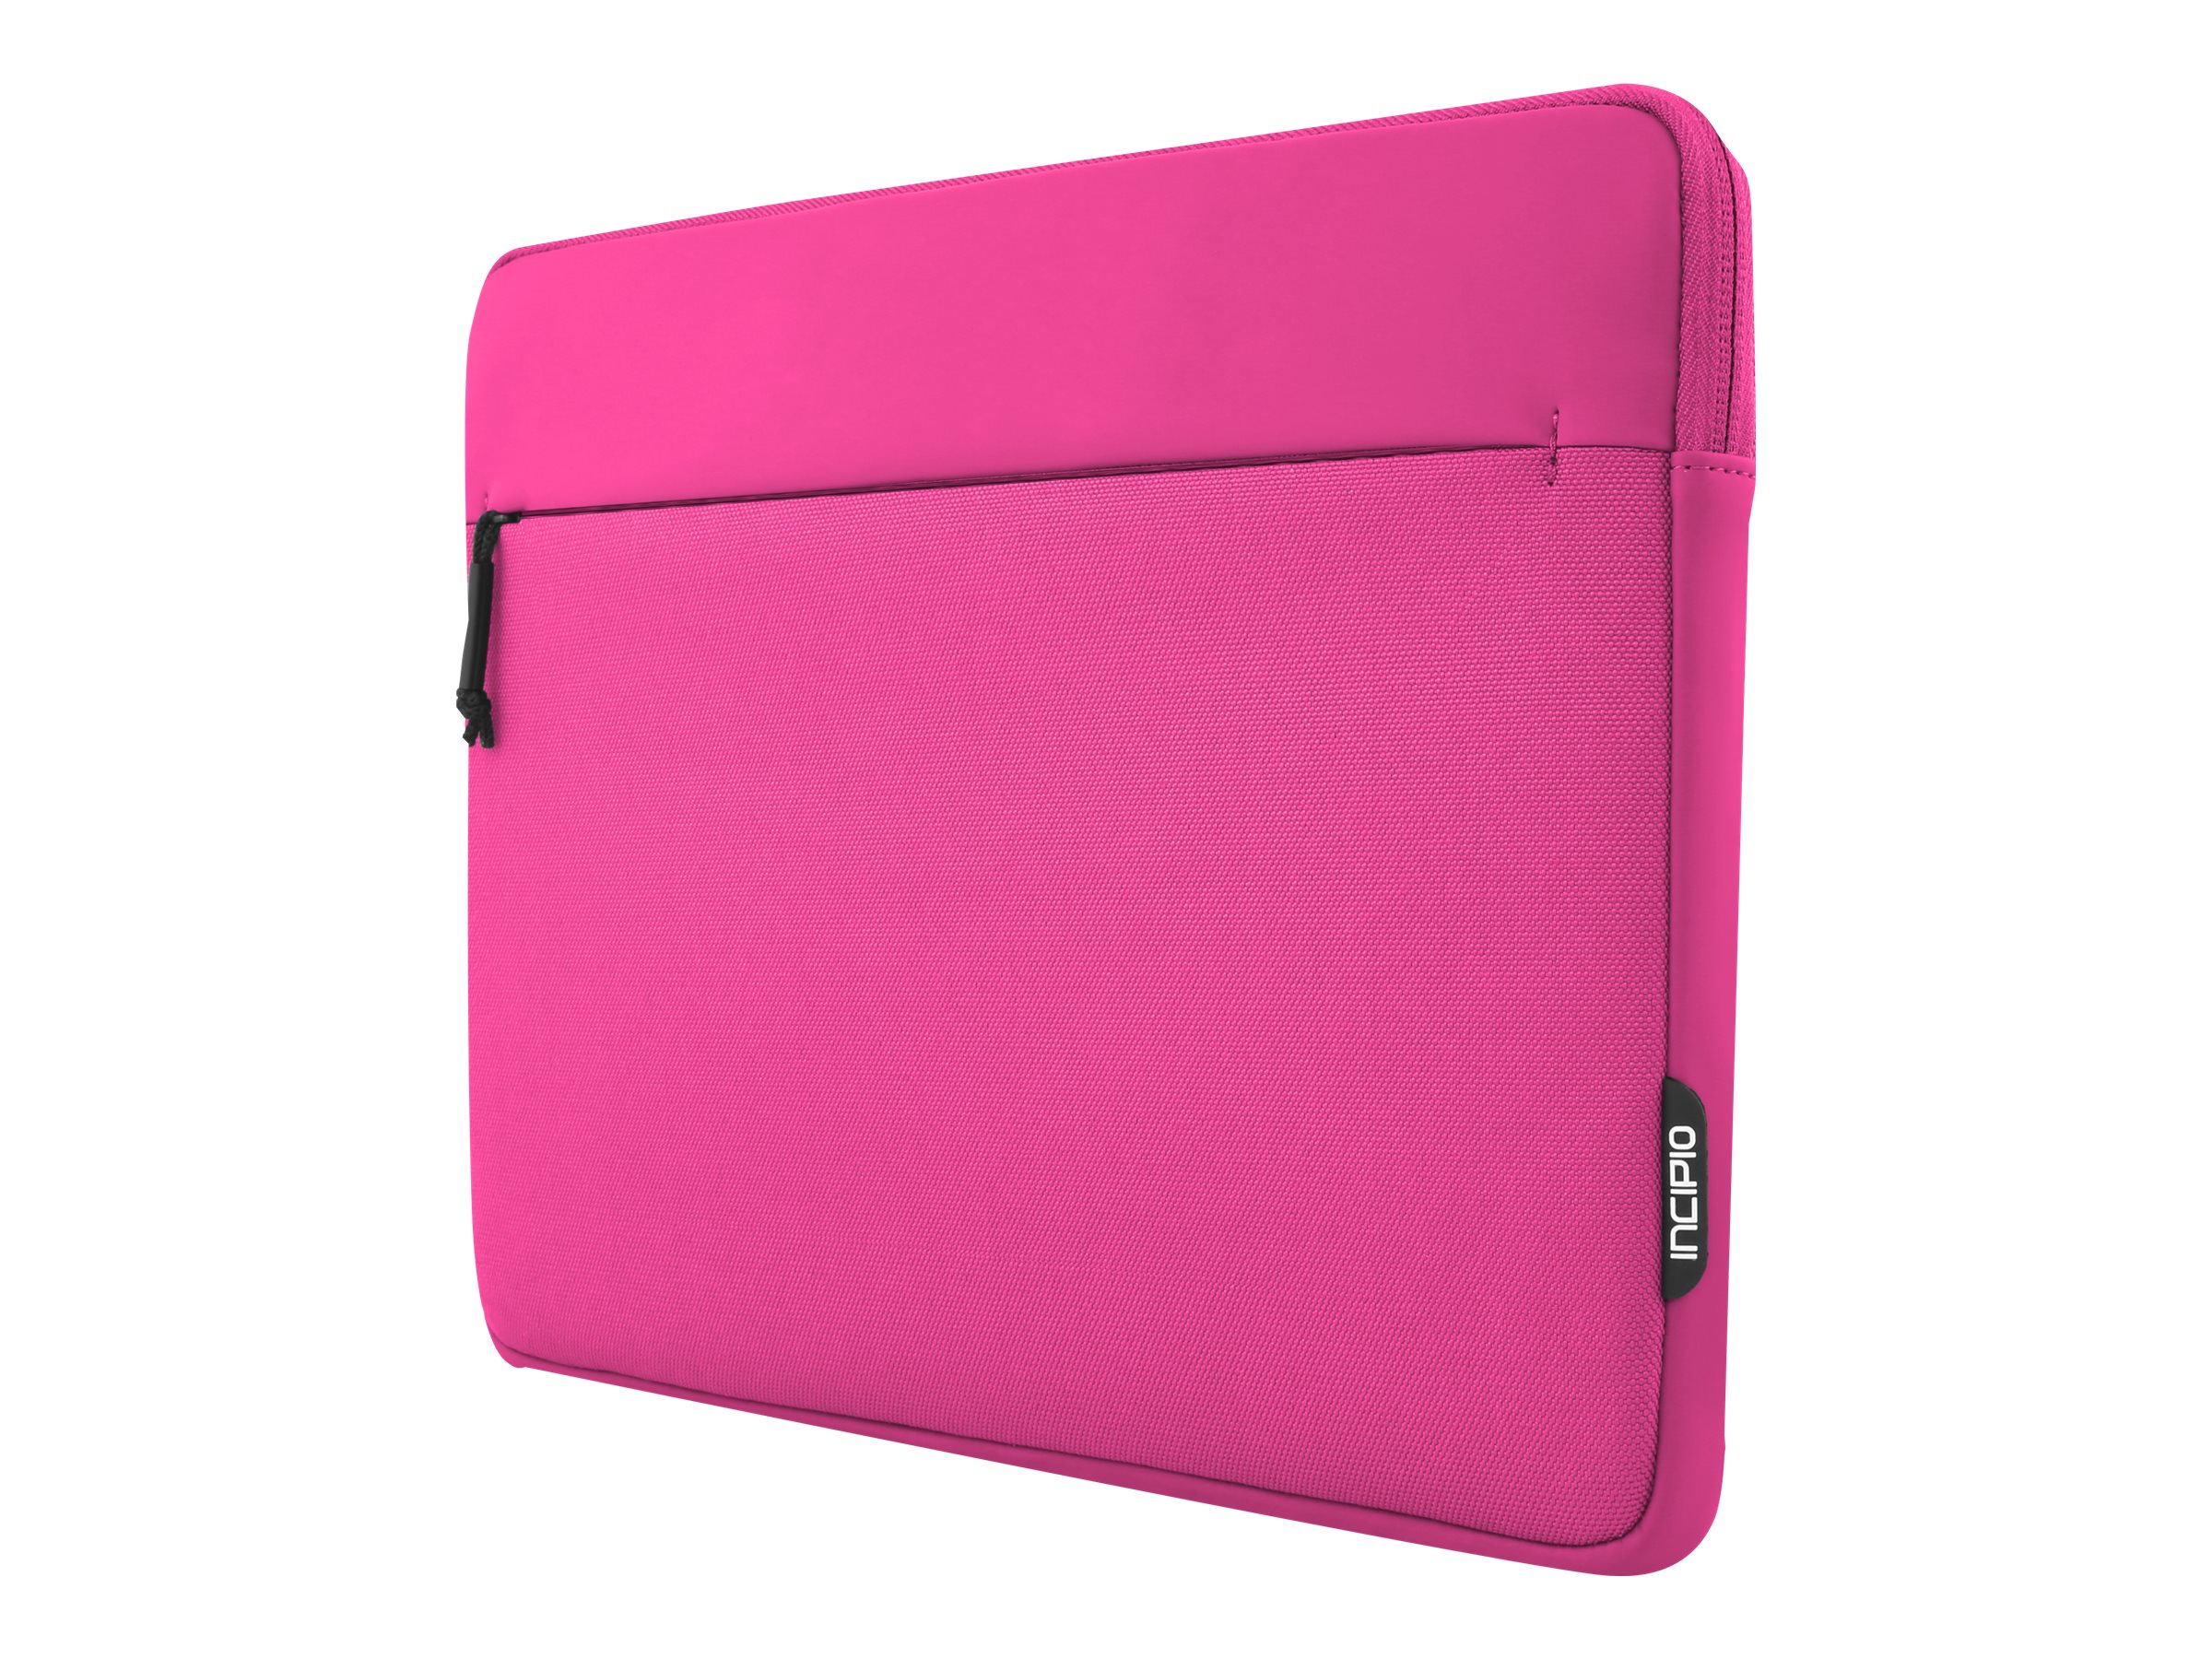 Incipio Truman Sleeve for iPad Pro, Pink, IPD-292-PNK, 31211919, Carrying Cases - Tablets & eReaders